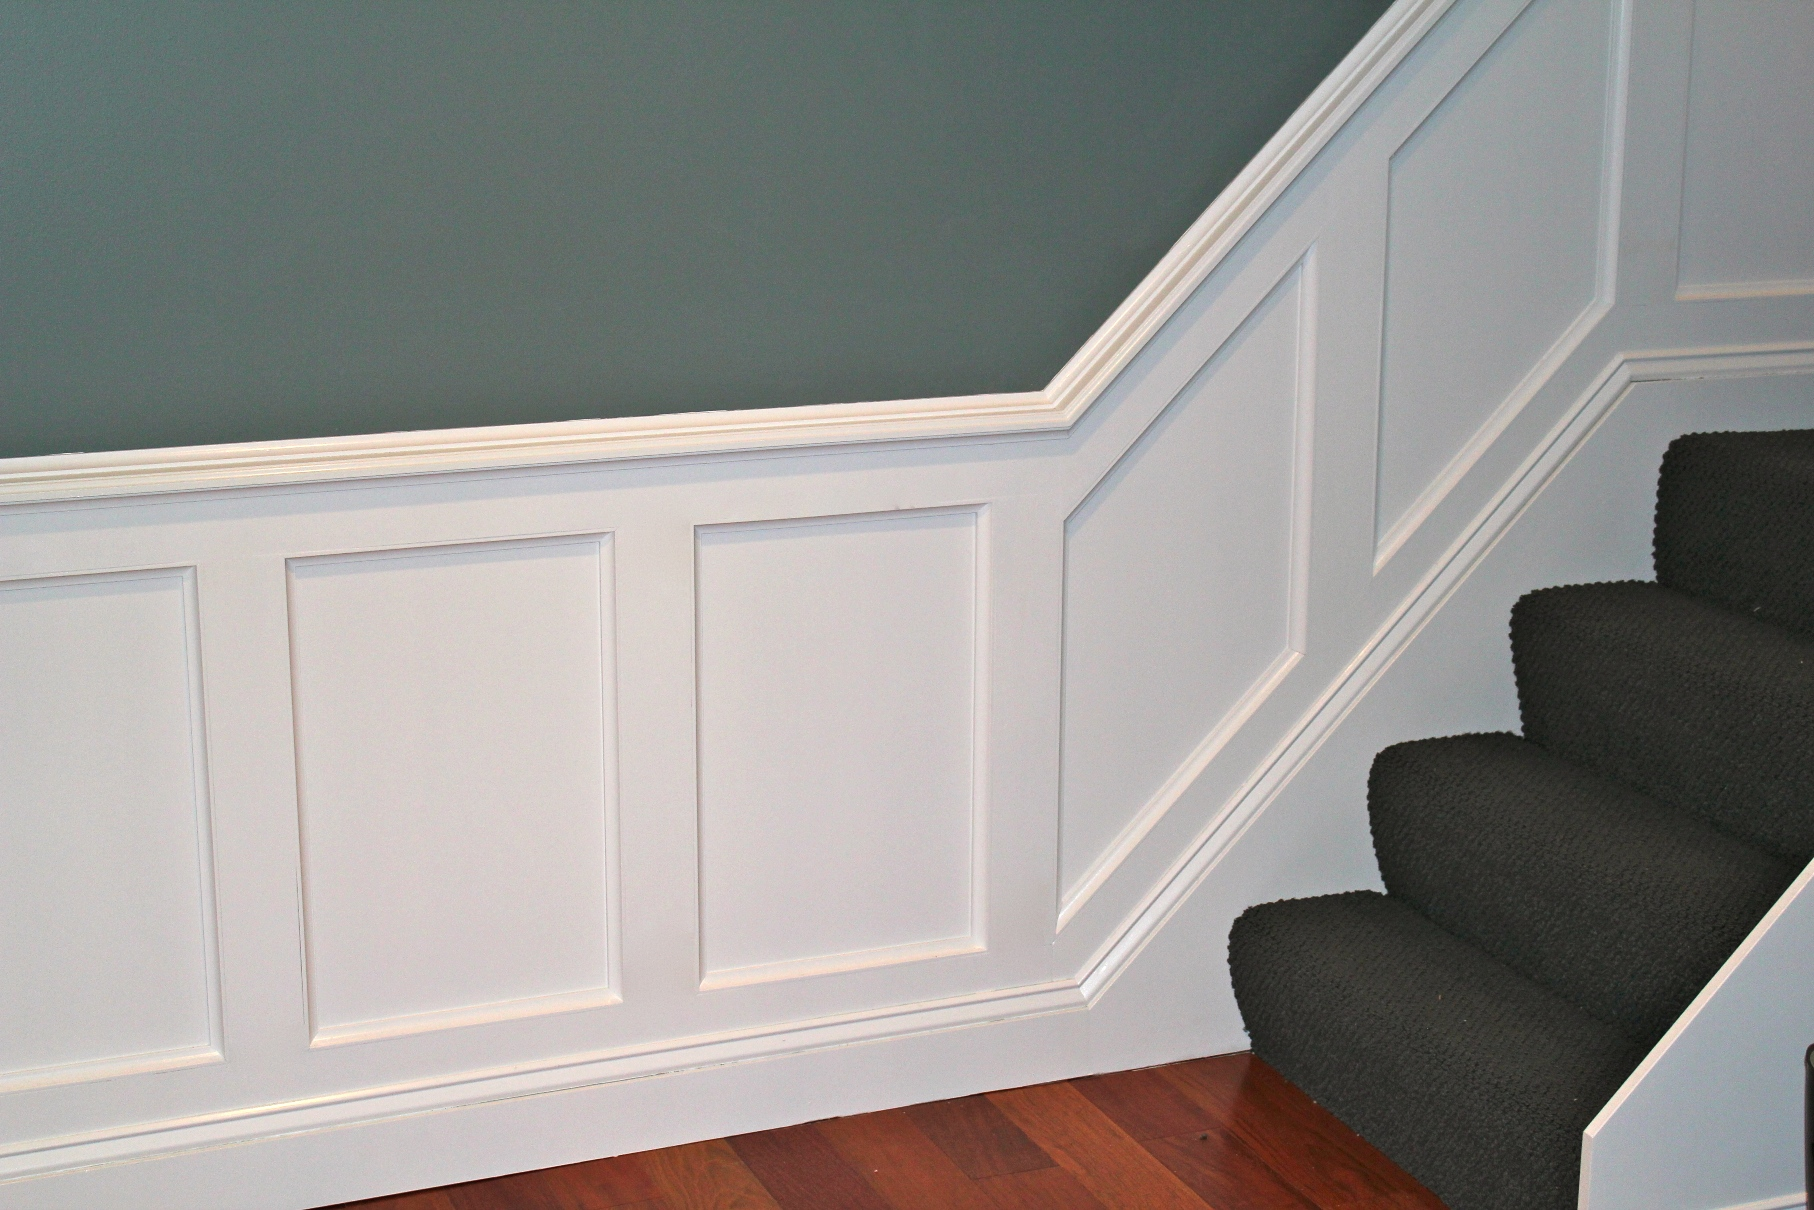 Planning A Wainscoting Installation Pro Construction Guide